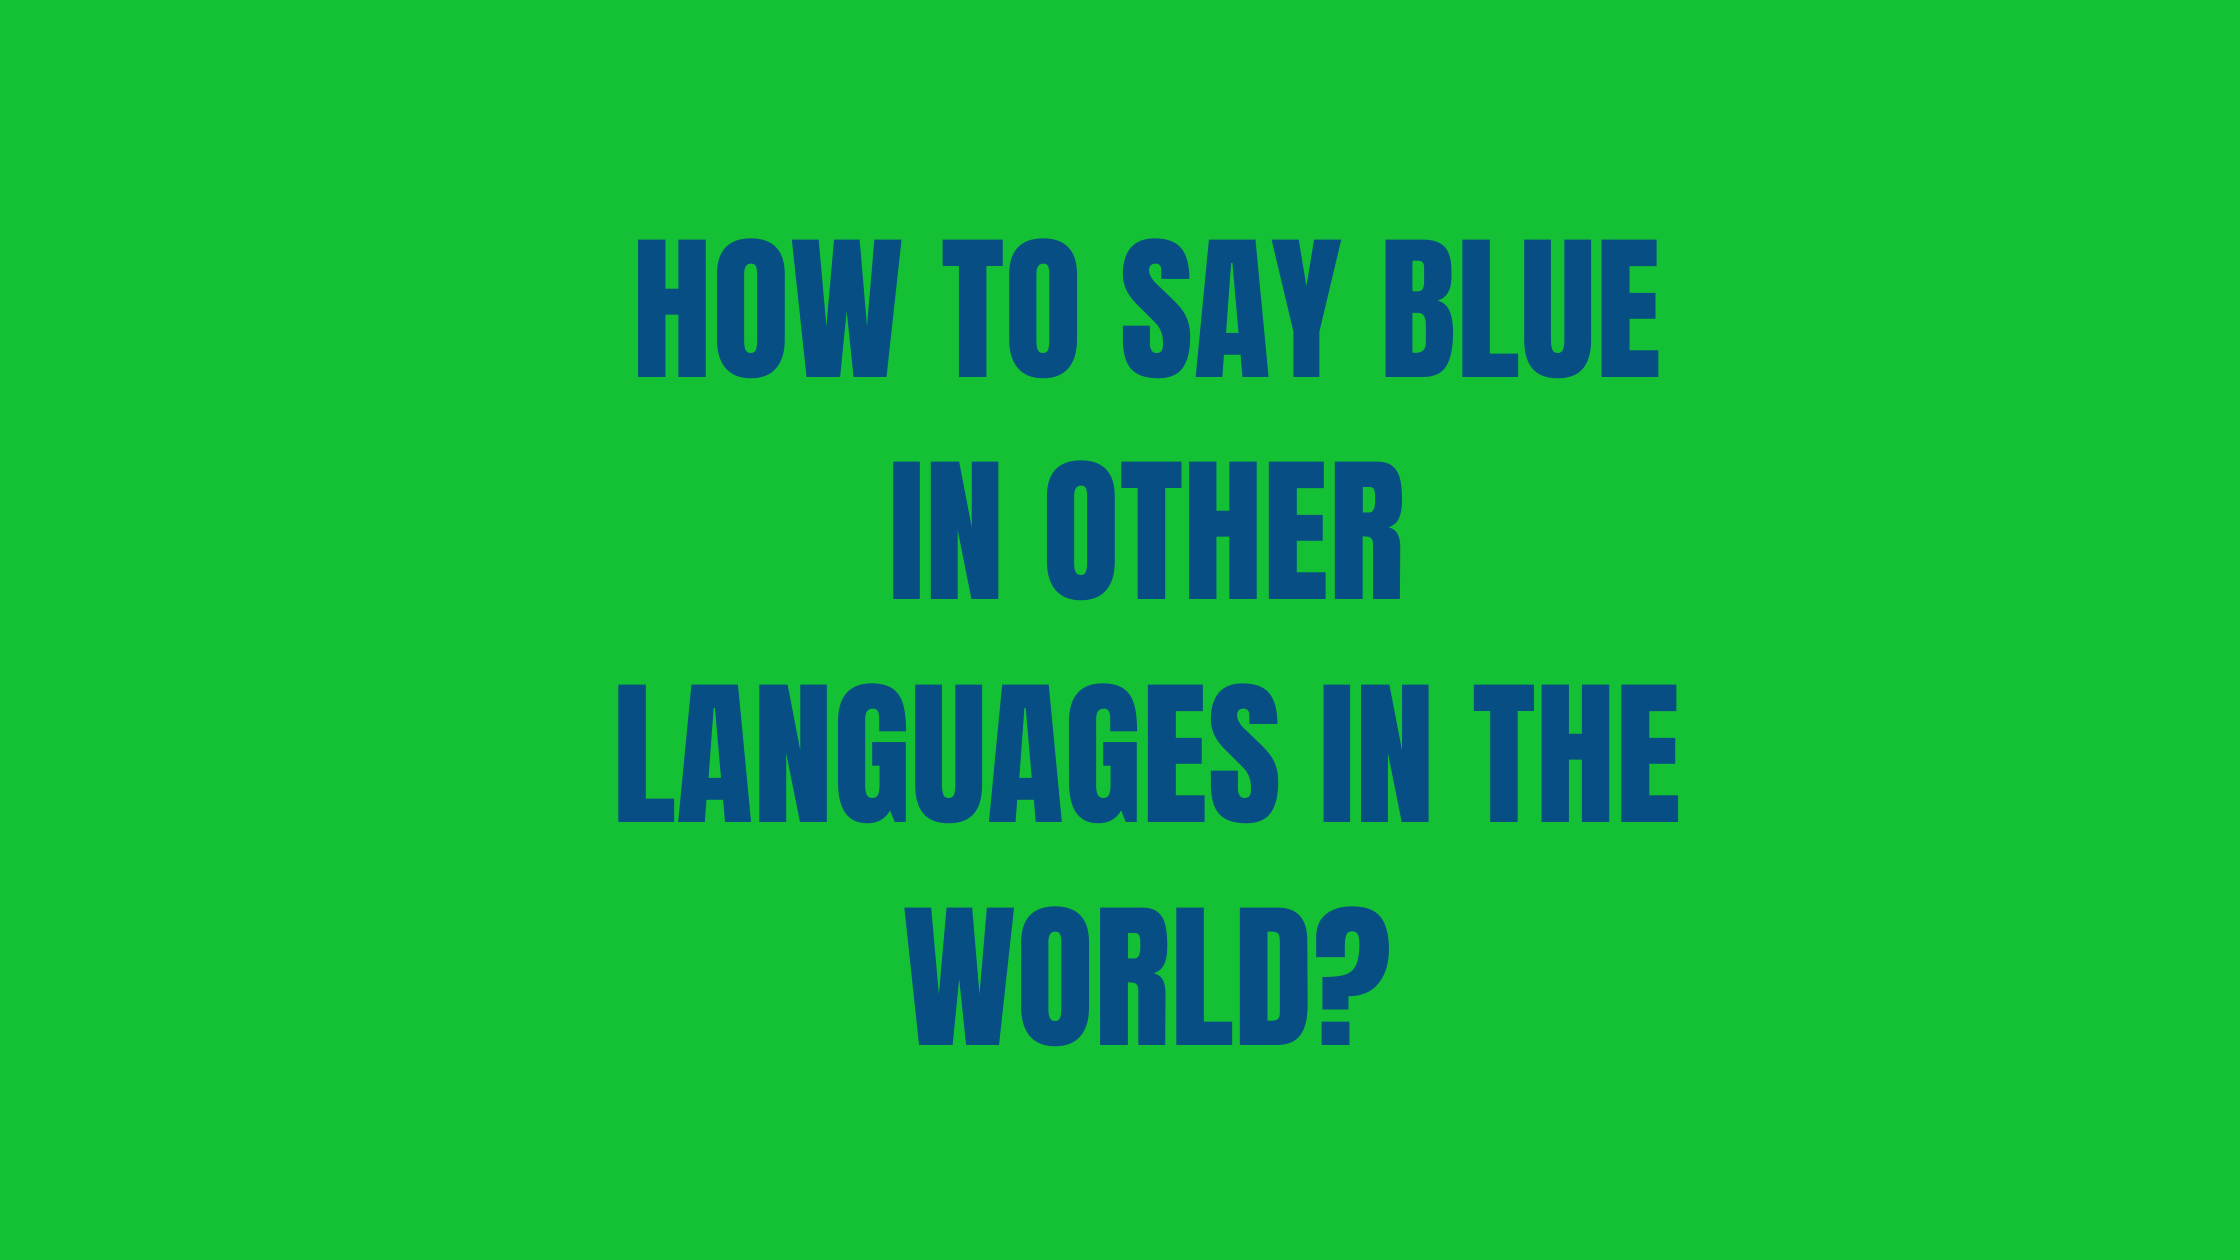 How to say Blue in different languages in the world | words for blue in other languages | blue translated in other languages | blue in all languages | different ways to say blue?